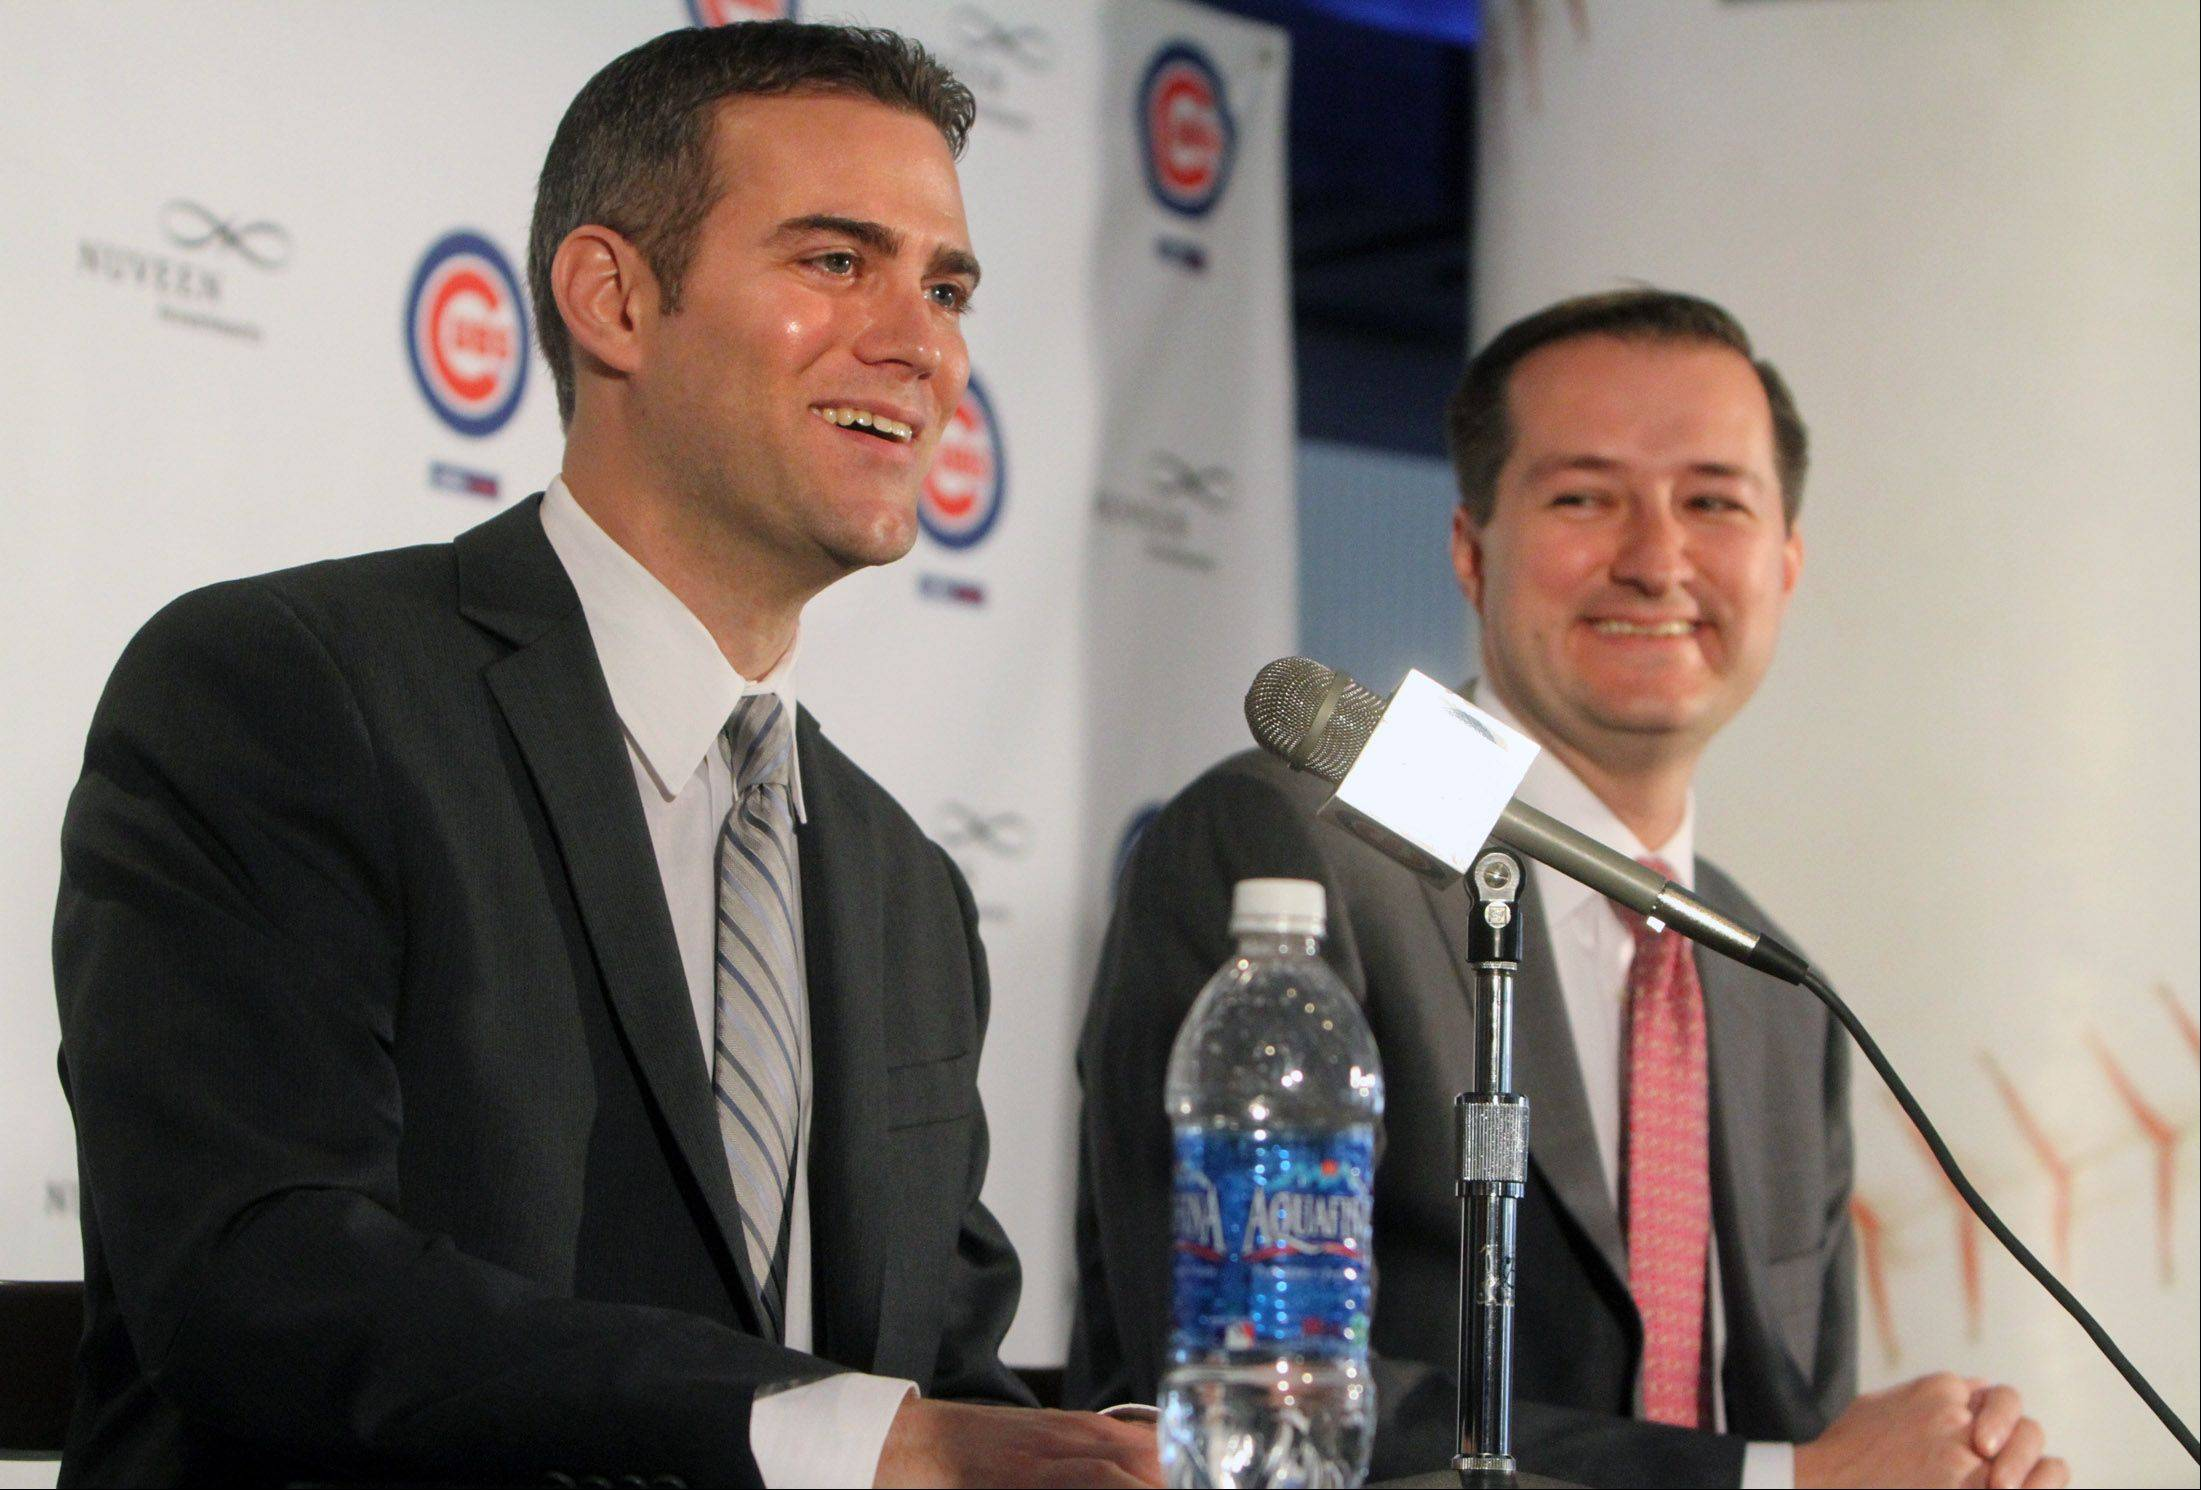 It was all smiles last October when Chicago Cubs Chairman Tom Ricketts, right, introduced Theo Epstein as the team's new president of baseball operations. But that was 101 losses ago.